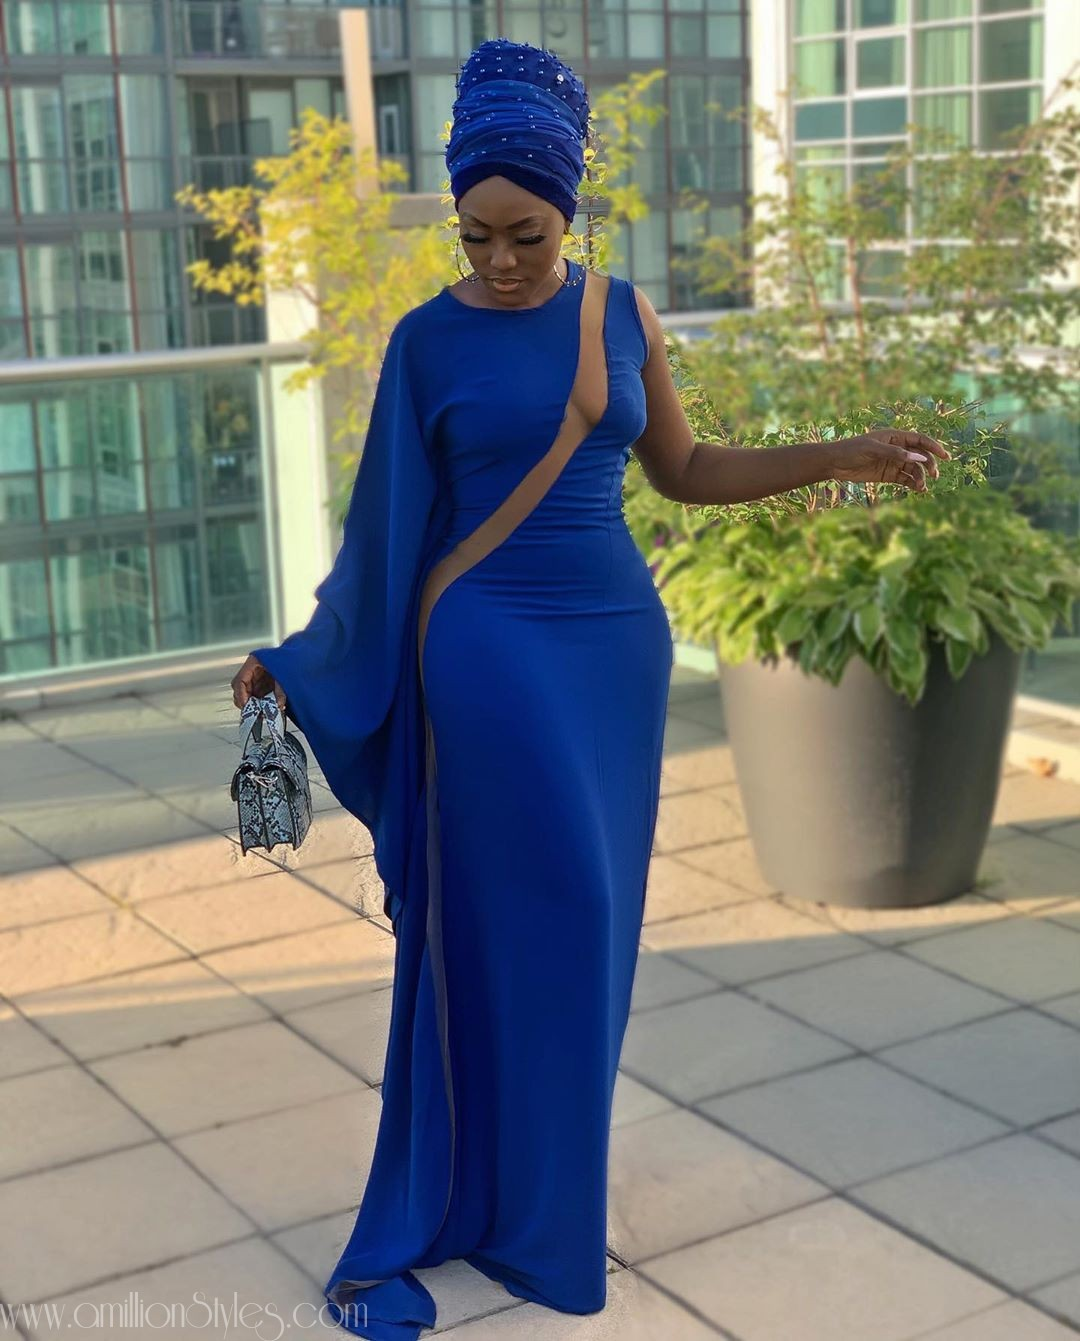 Here Are The 7 Best Maxi Dresses You'll See This Year